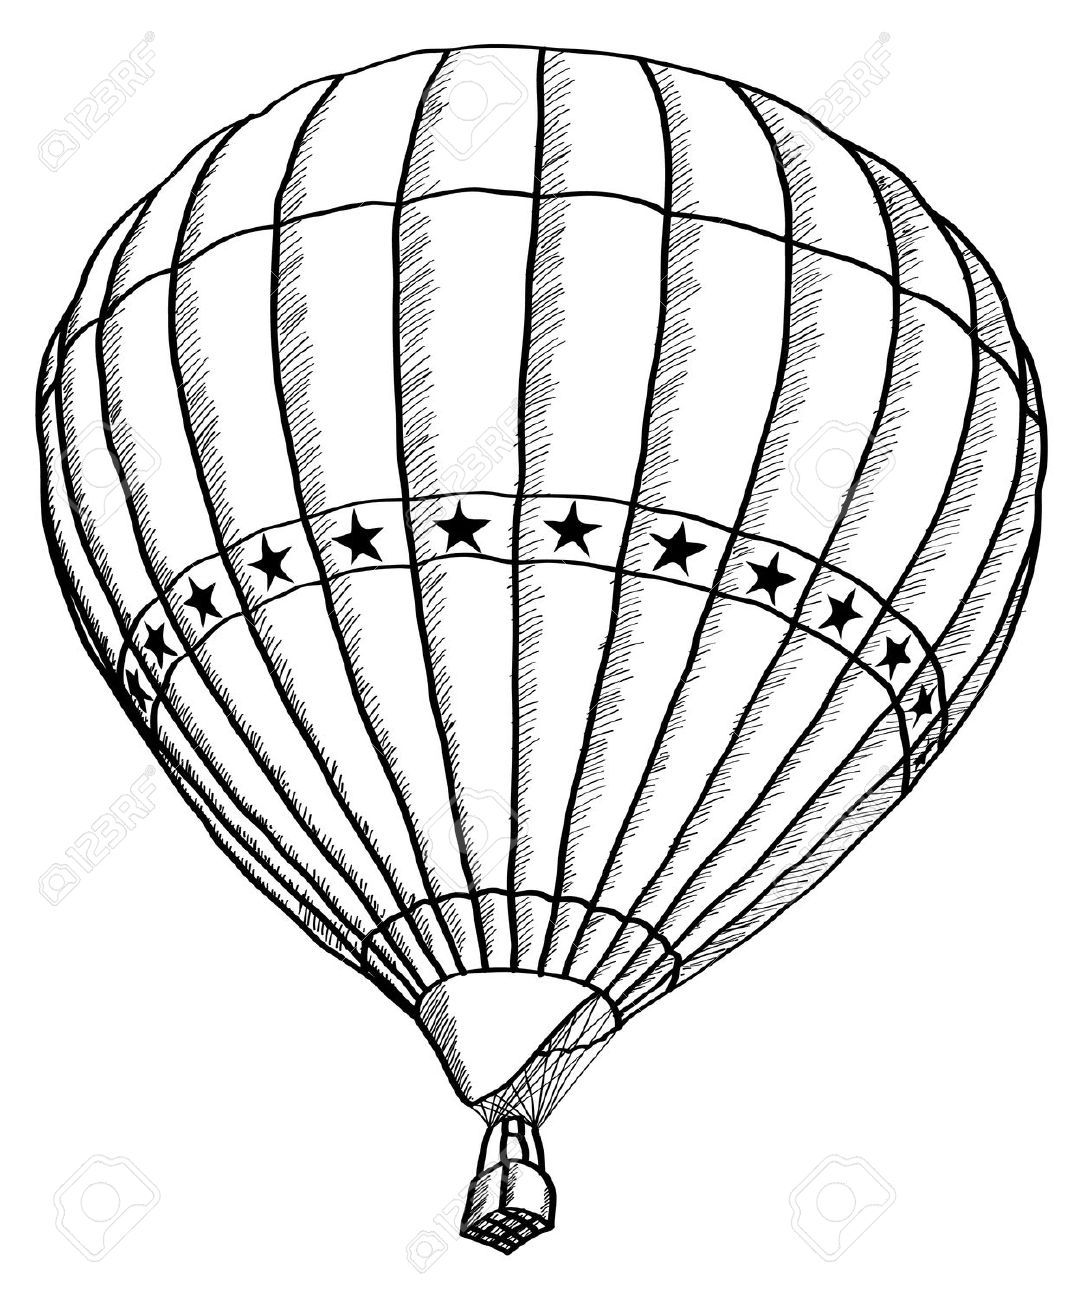 Image result for hot air balloon simple black and white